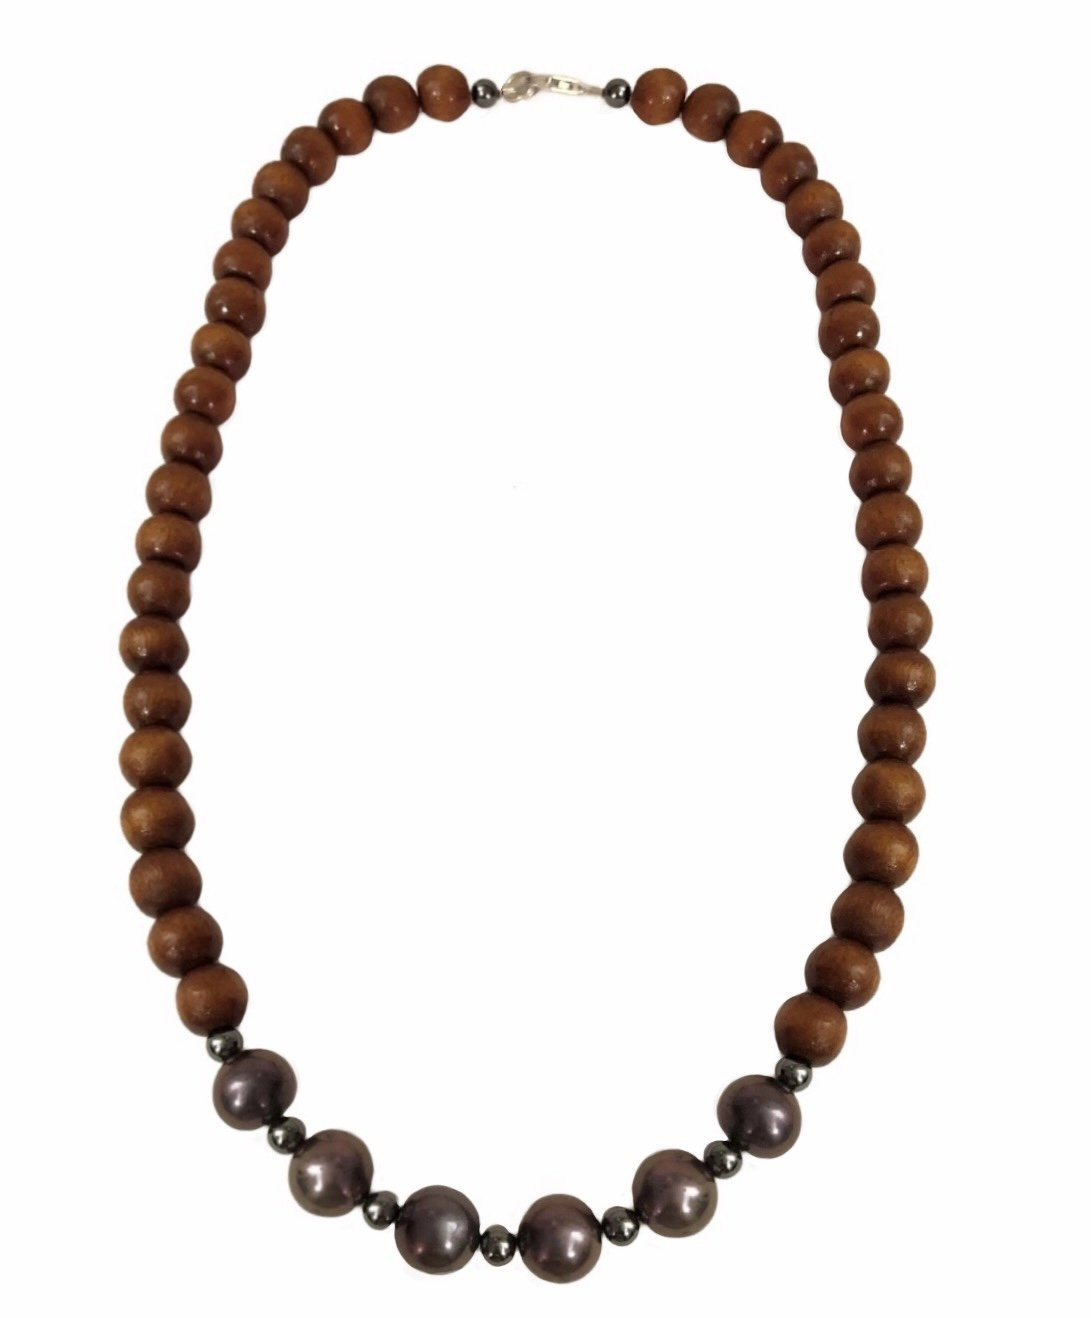 Pearl Black with Koa Wood Necklace